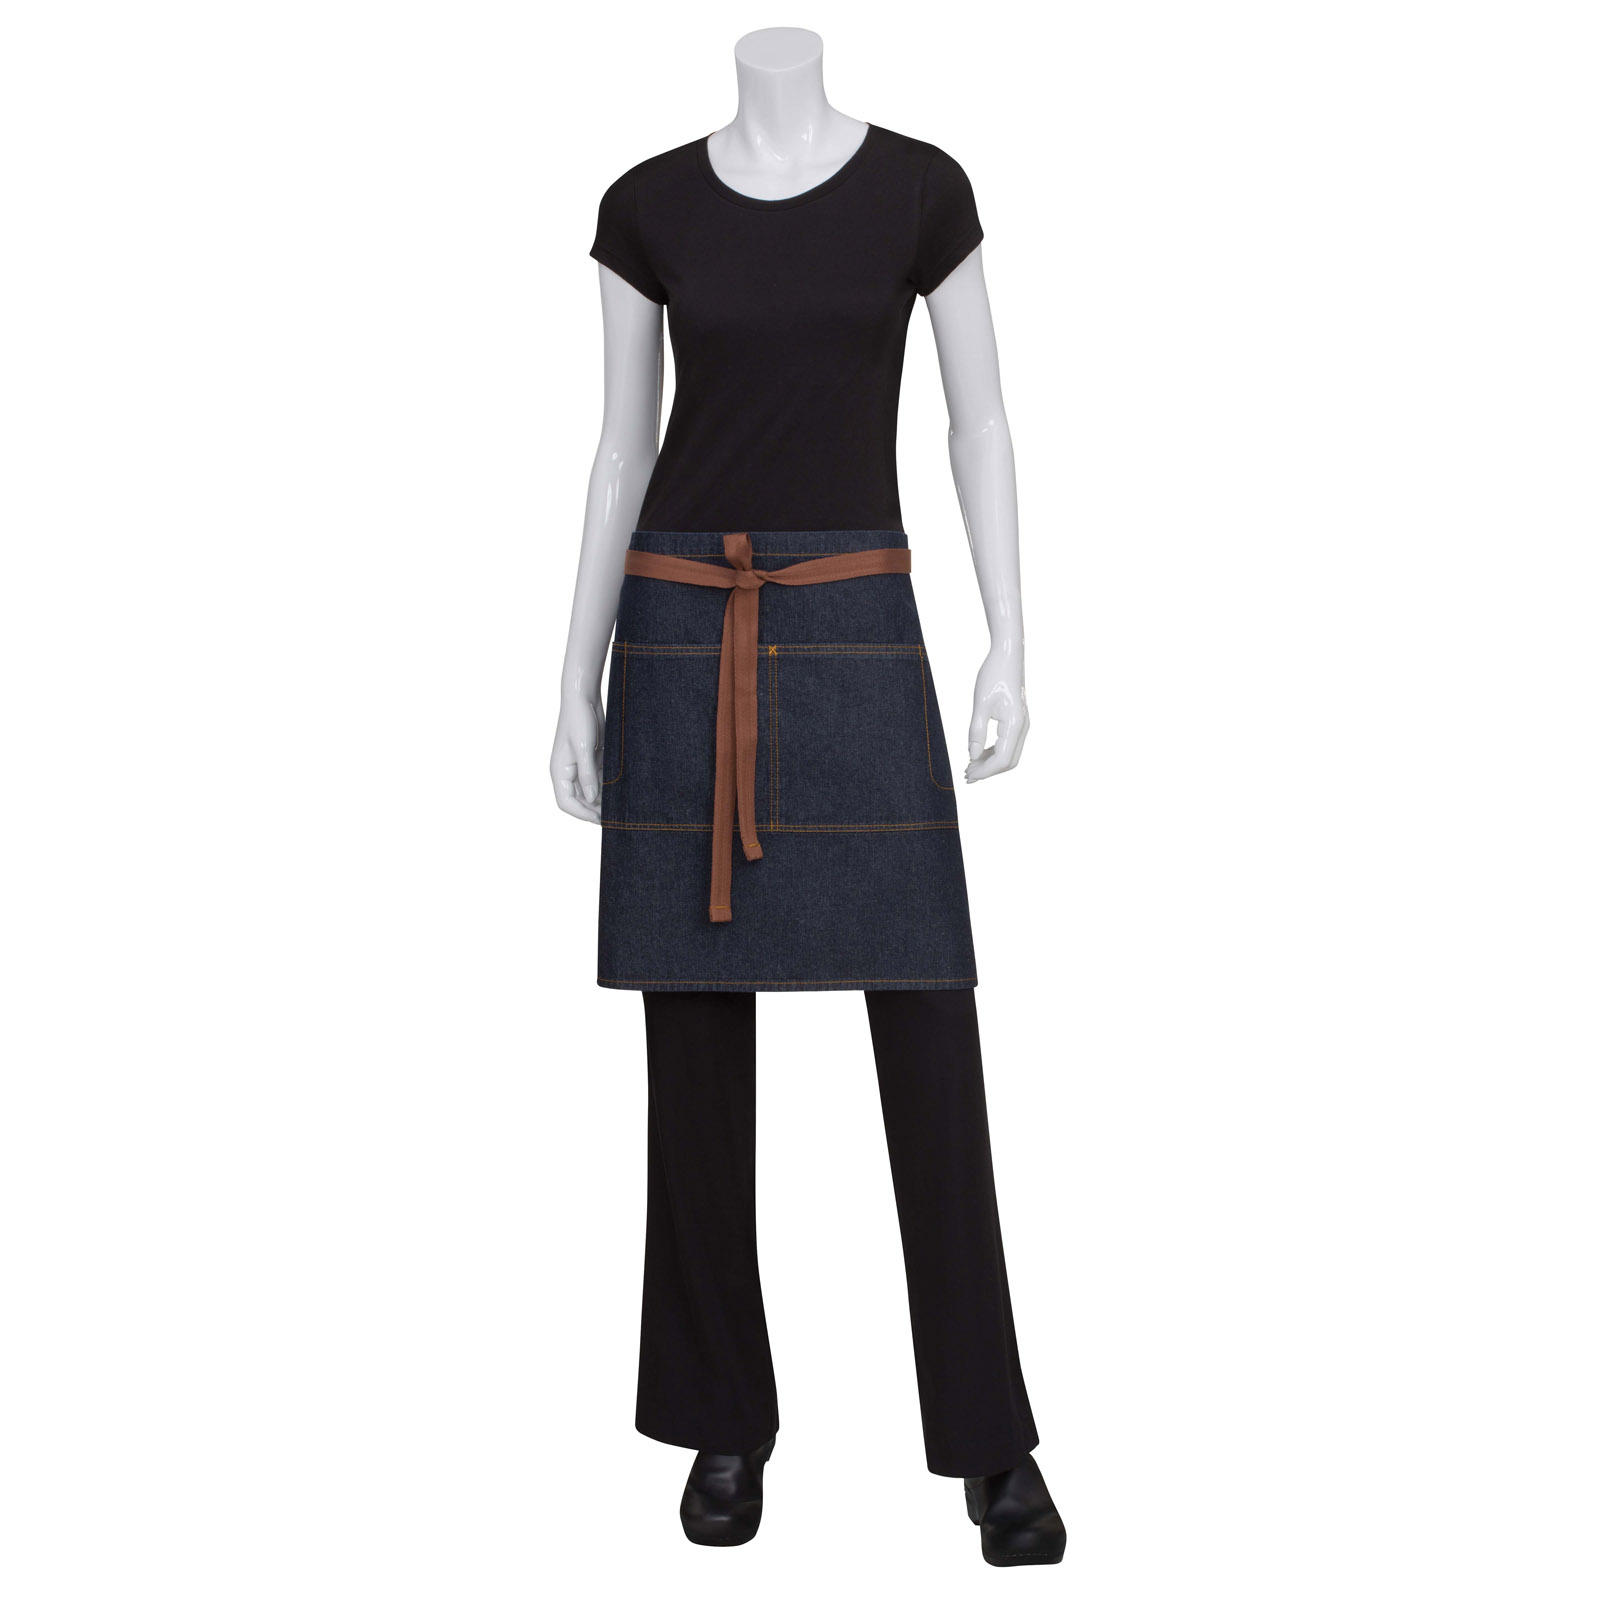 Chef Works AW048IBL0 waist apron